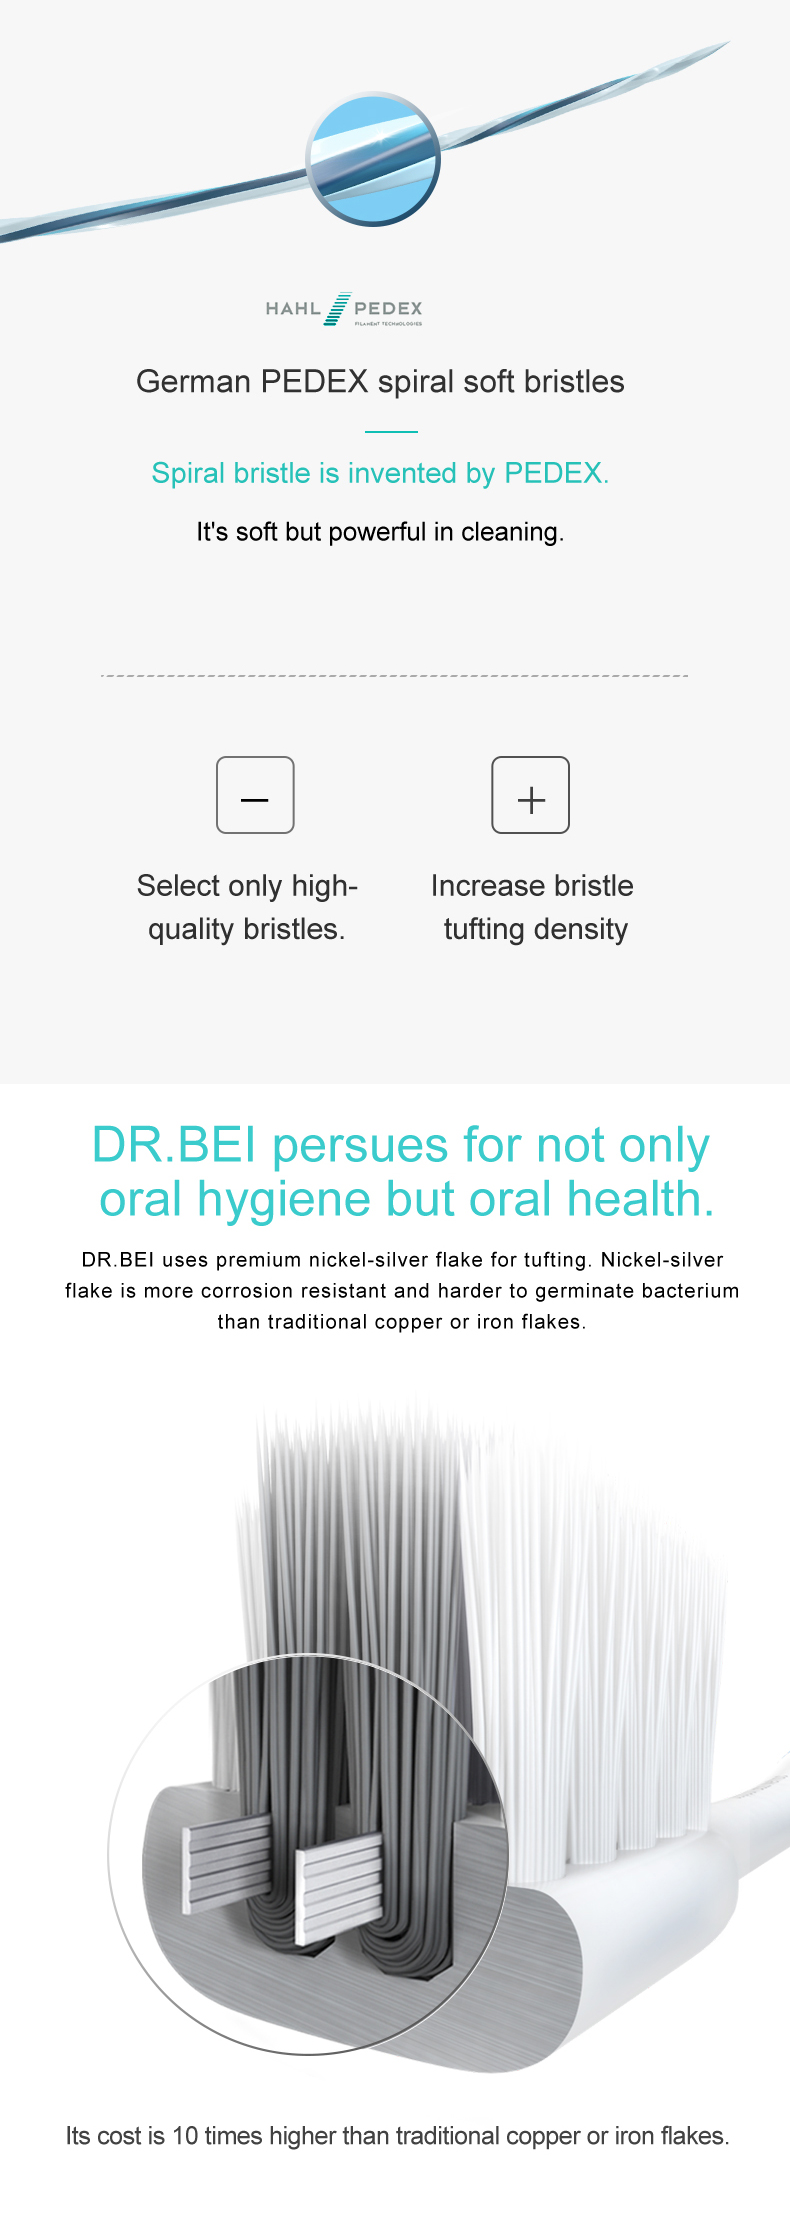 DR.BEI Bass Toothbrush, 4 Pieces (Original) Xiaomi Youpin DR.BEI Bass Soft Toothbrush Portable 4 Colors Tooth Brush With Nano Ultra-fine Bristles Wave Flat Teeth Head Travel Outdoor